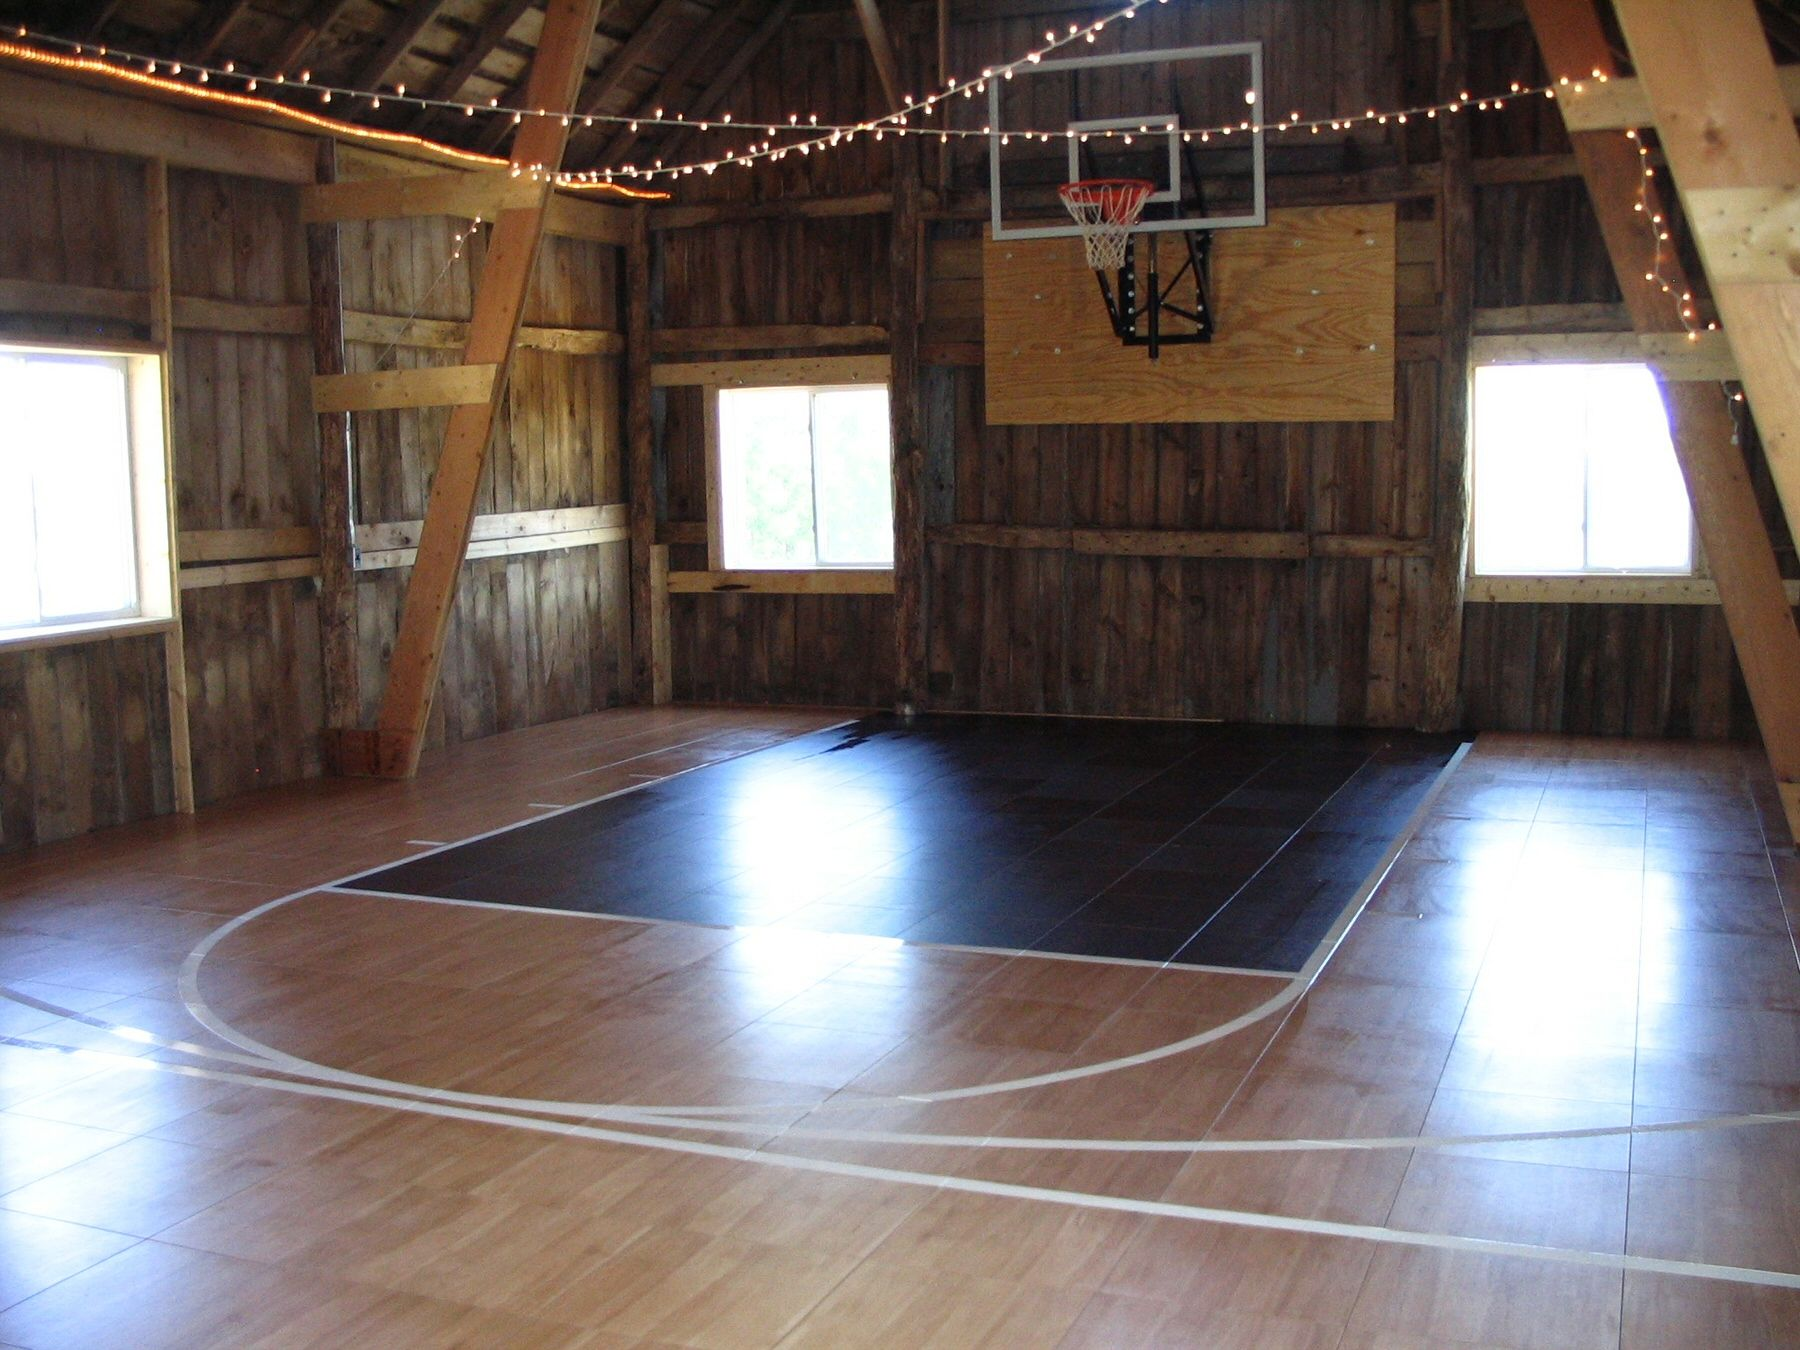 Build A Basketball Gym Backyard Decks Designs